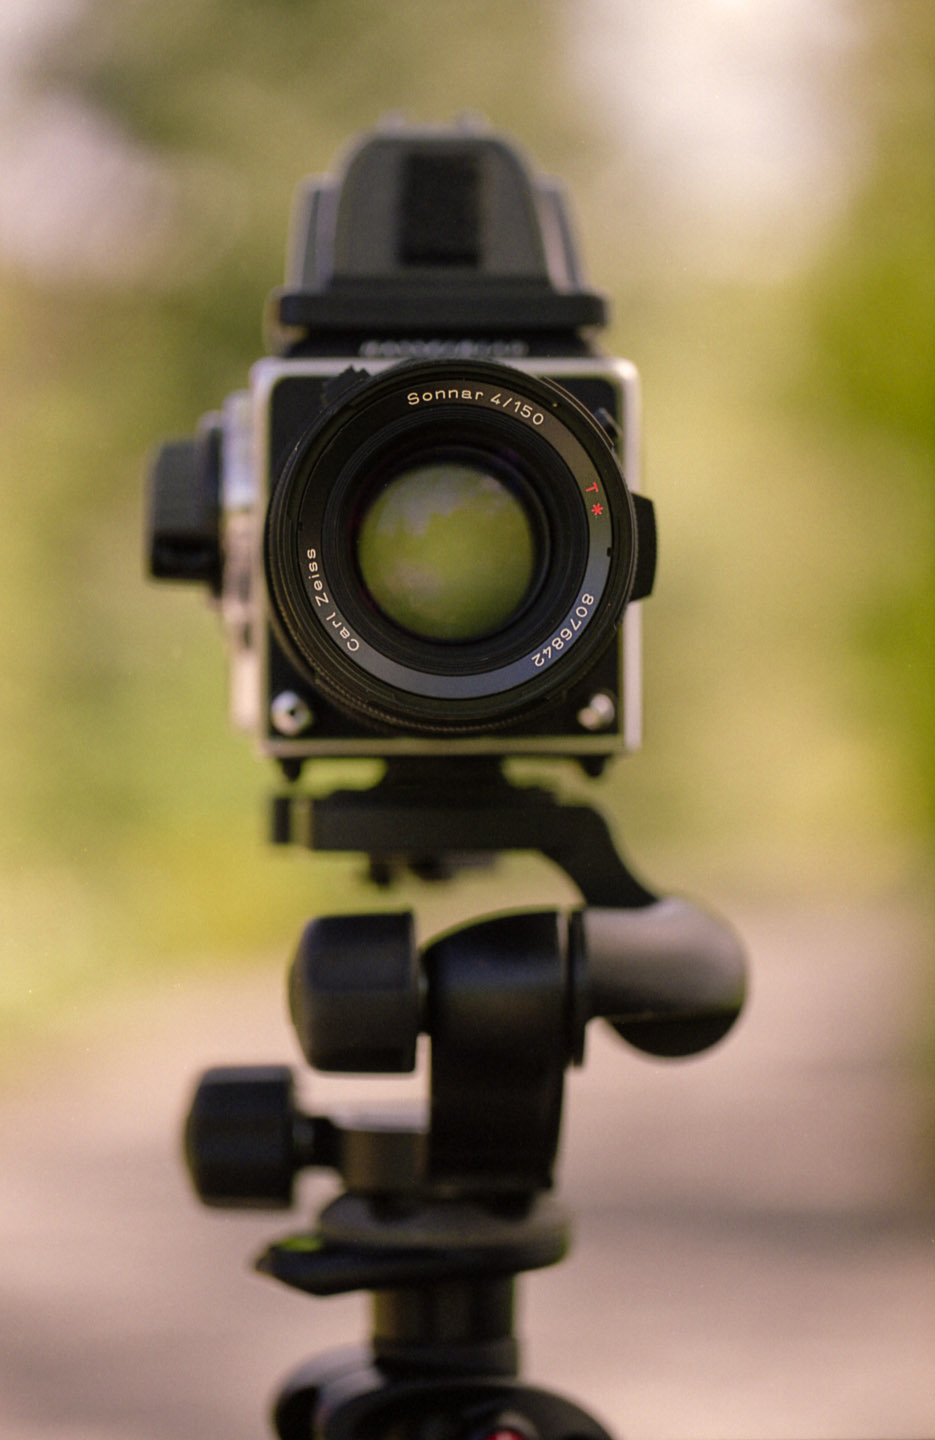 Hasselblad film camera on a tripod